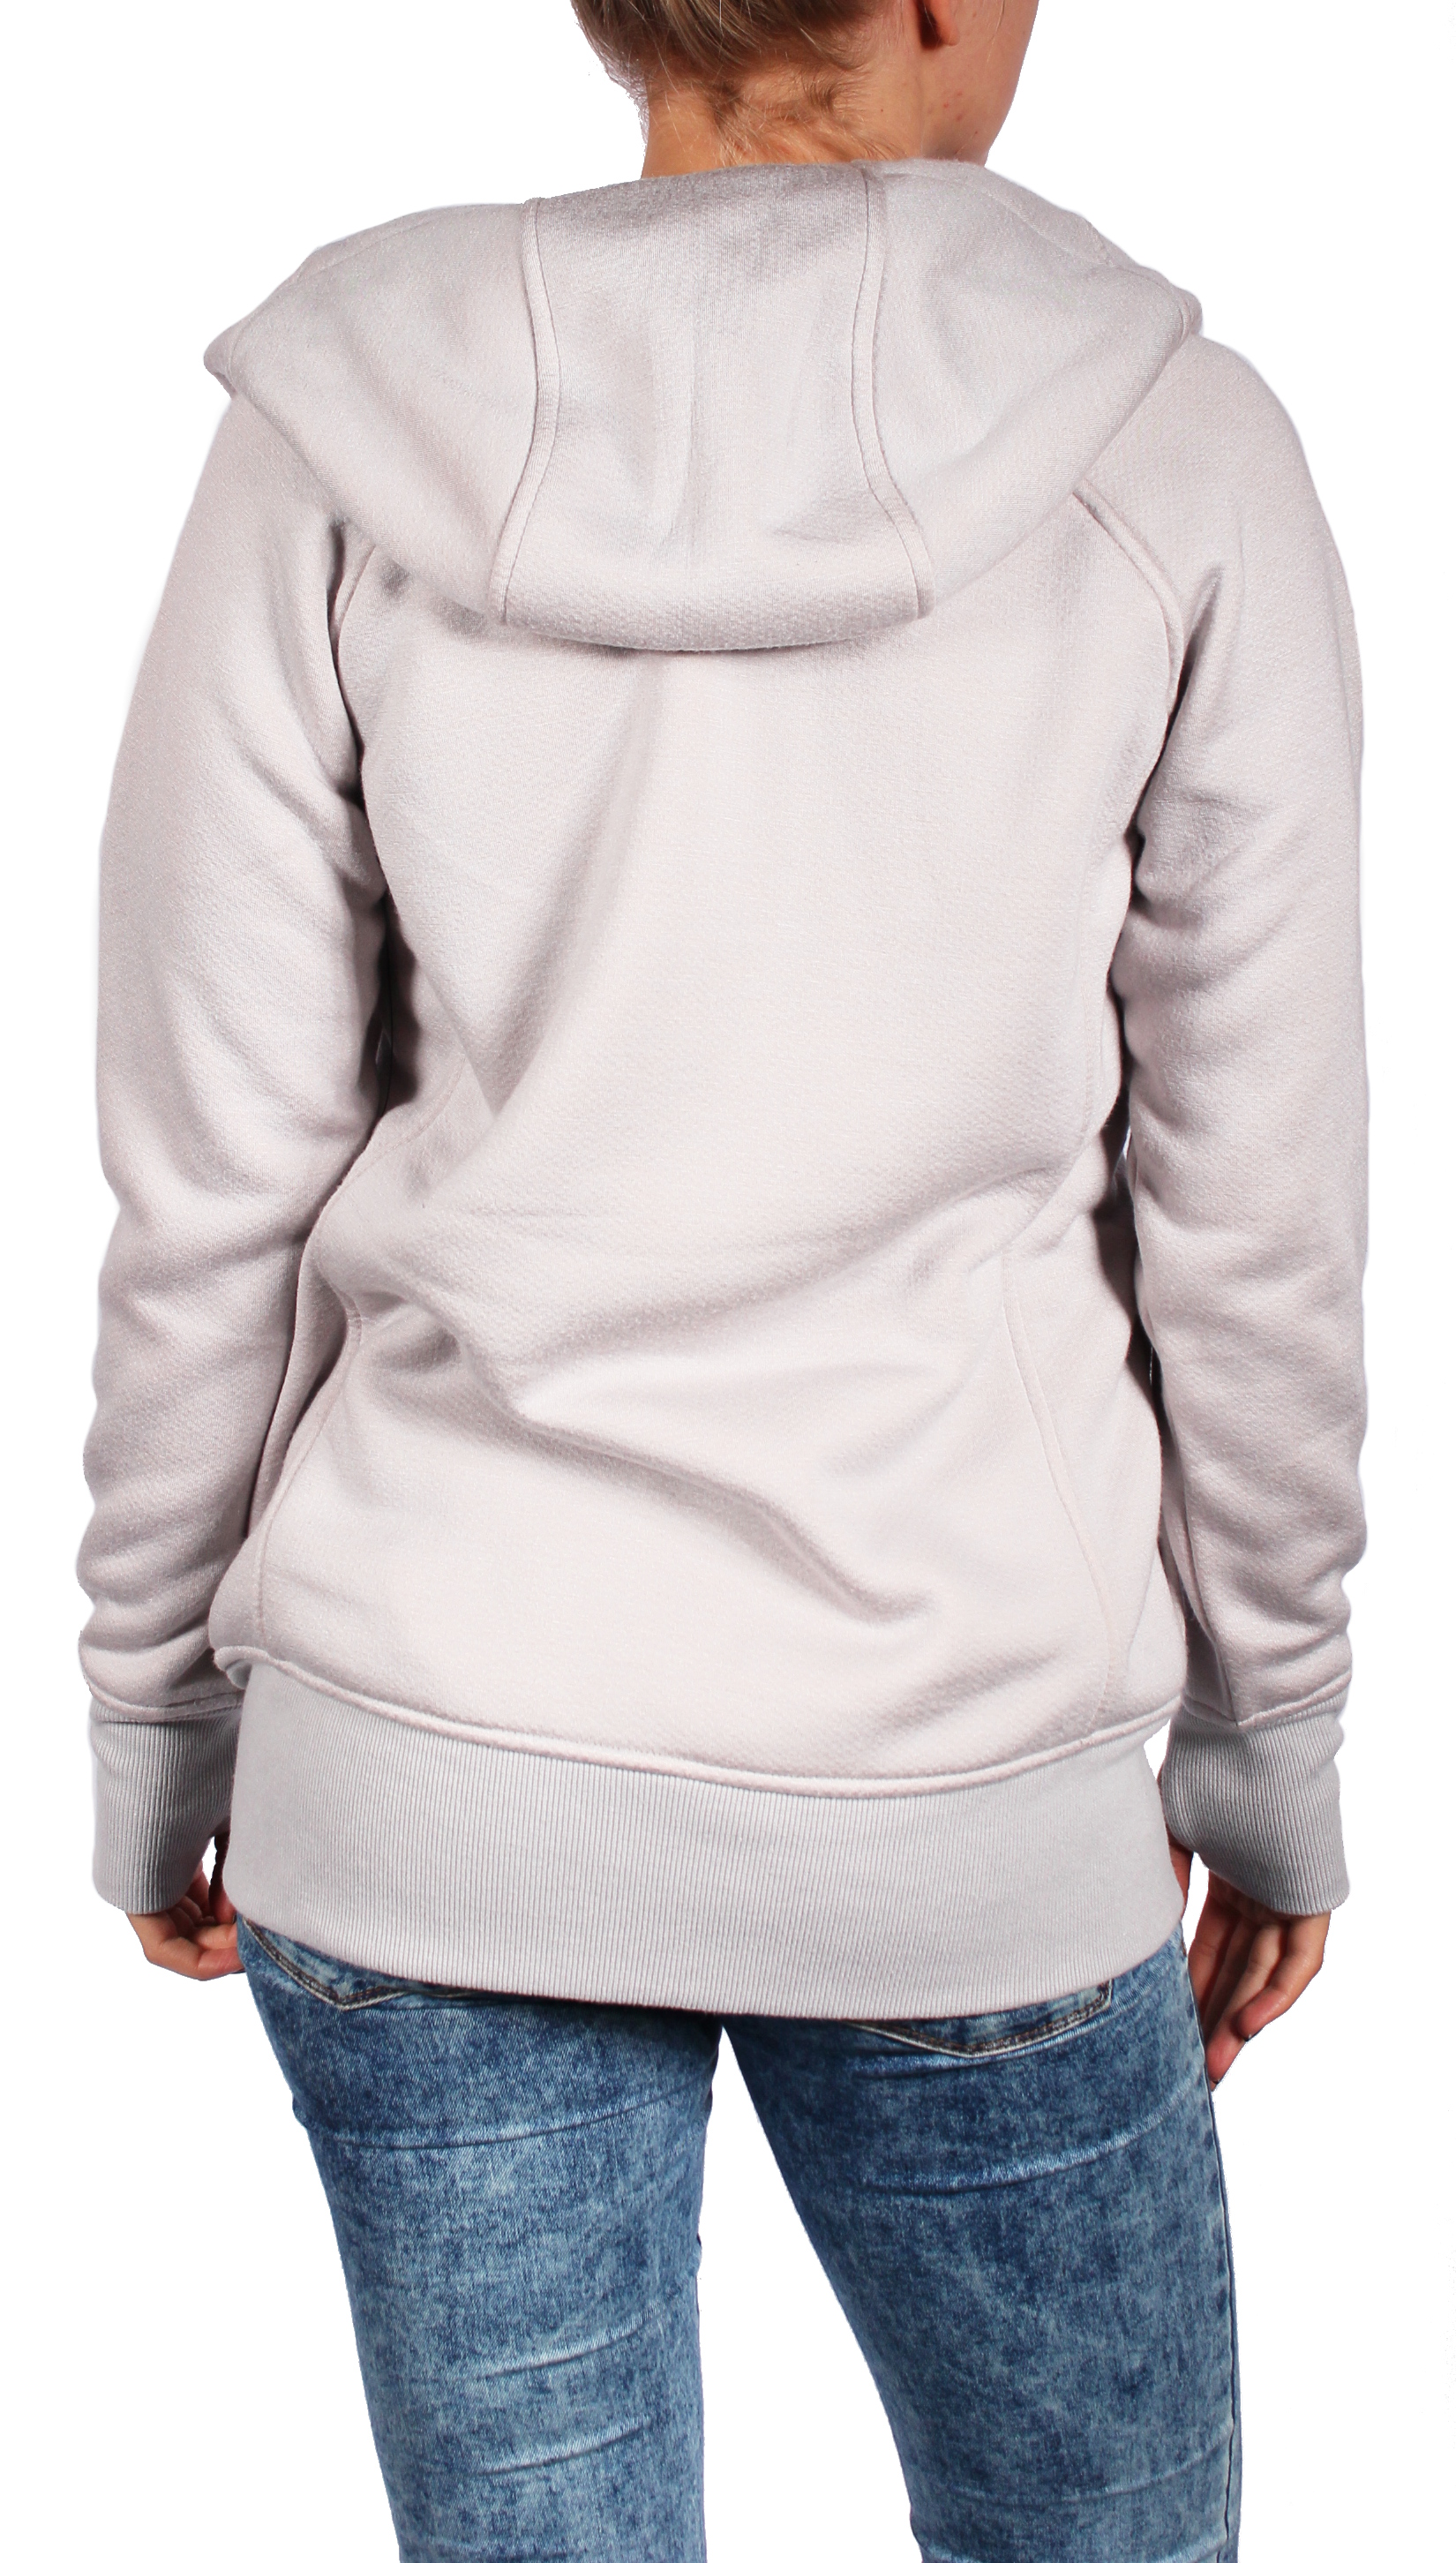 Bluza Ocieplana Burton Journey Fleece (High-rise Heather)